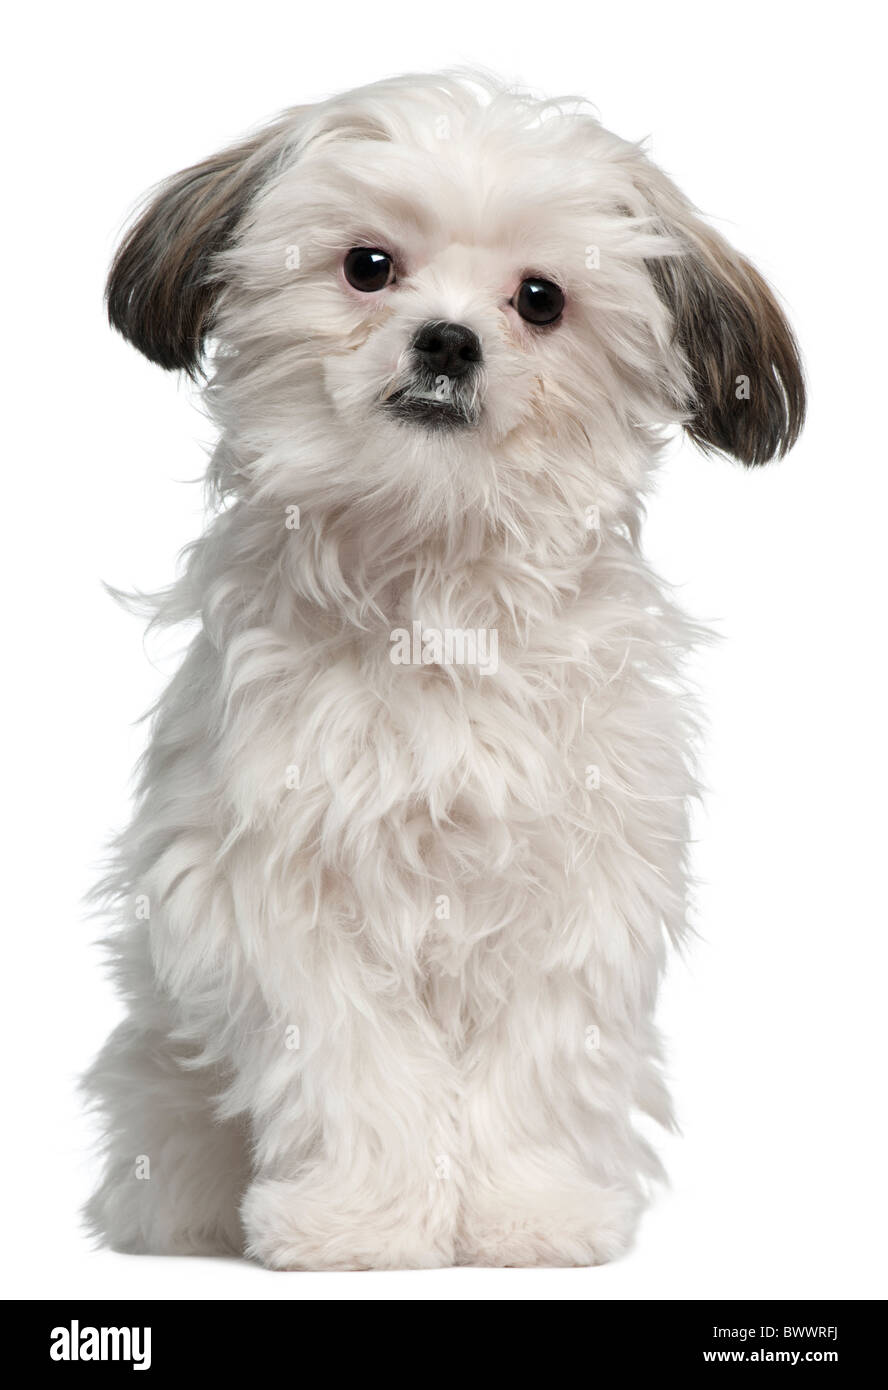 Lhassa Apso, 7 months old, sitting in front of white background - Stock Image